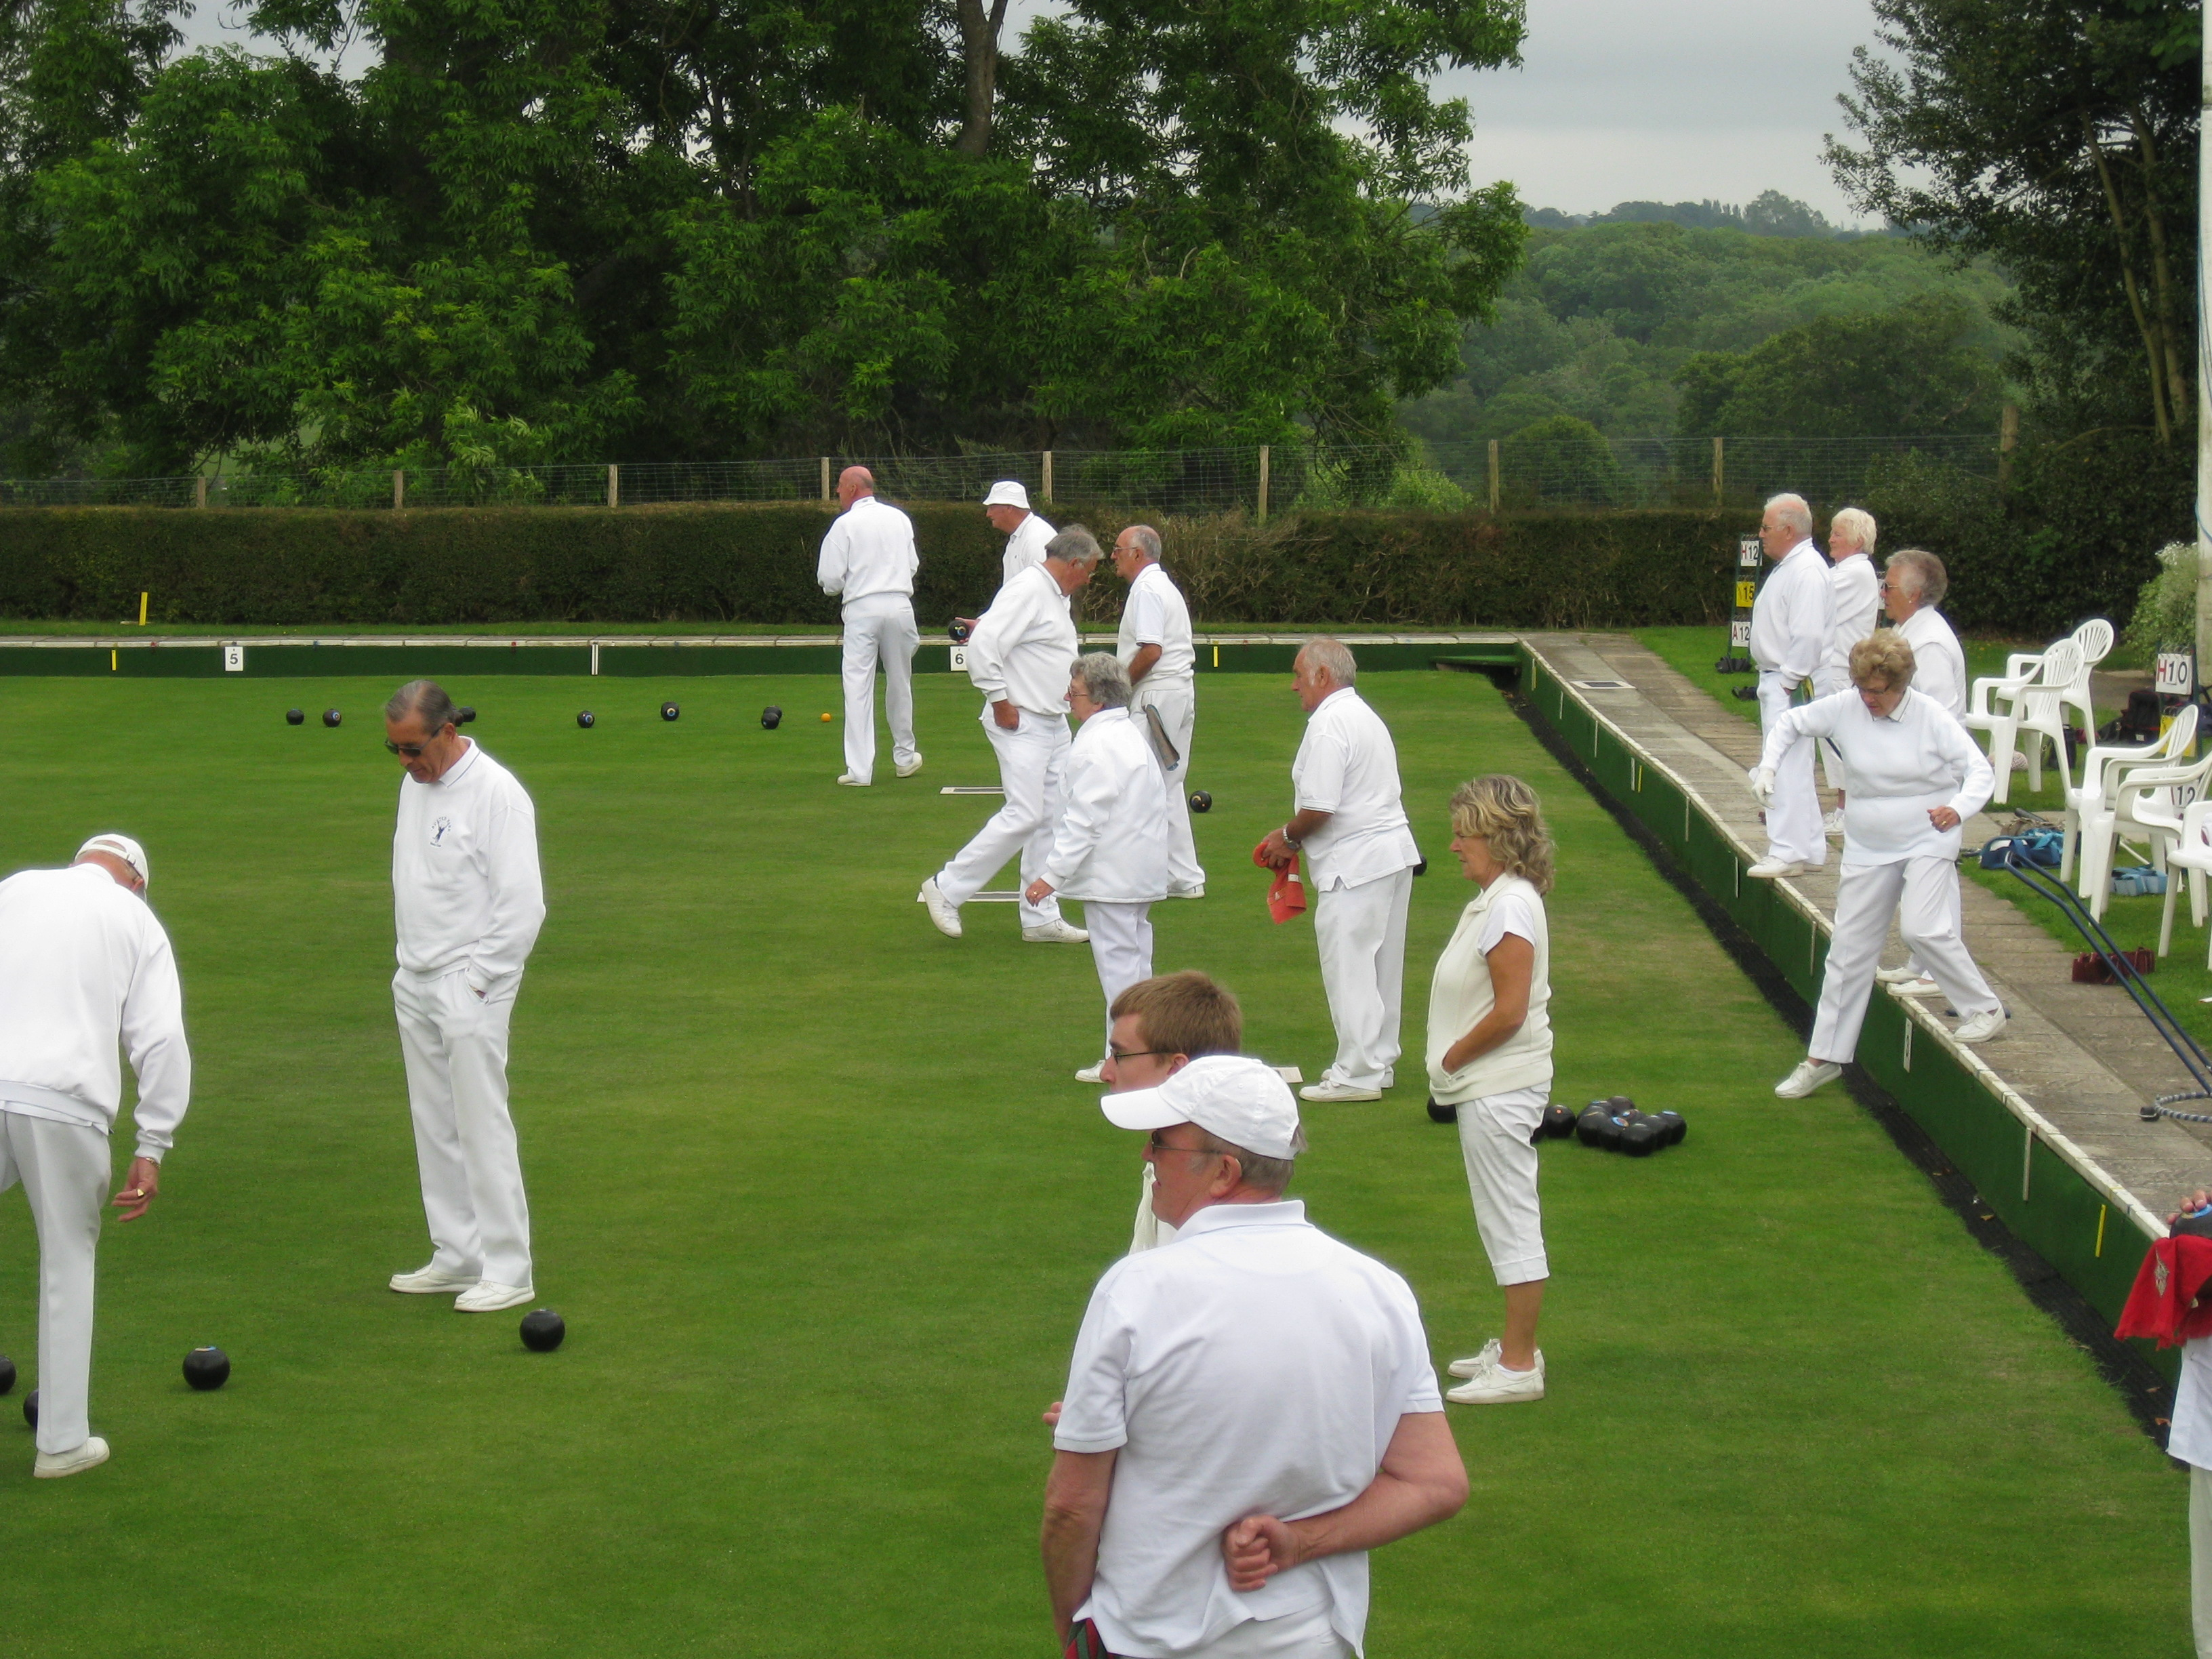 Bowls Game being played